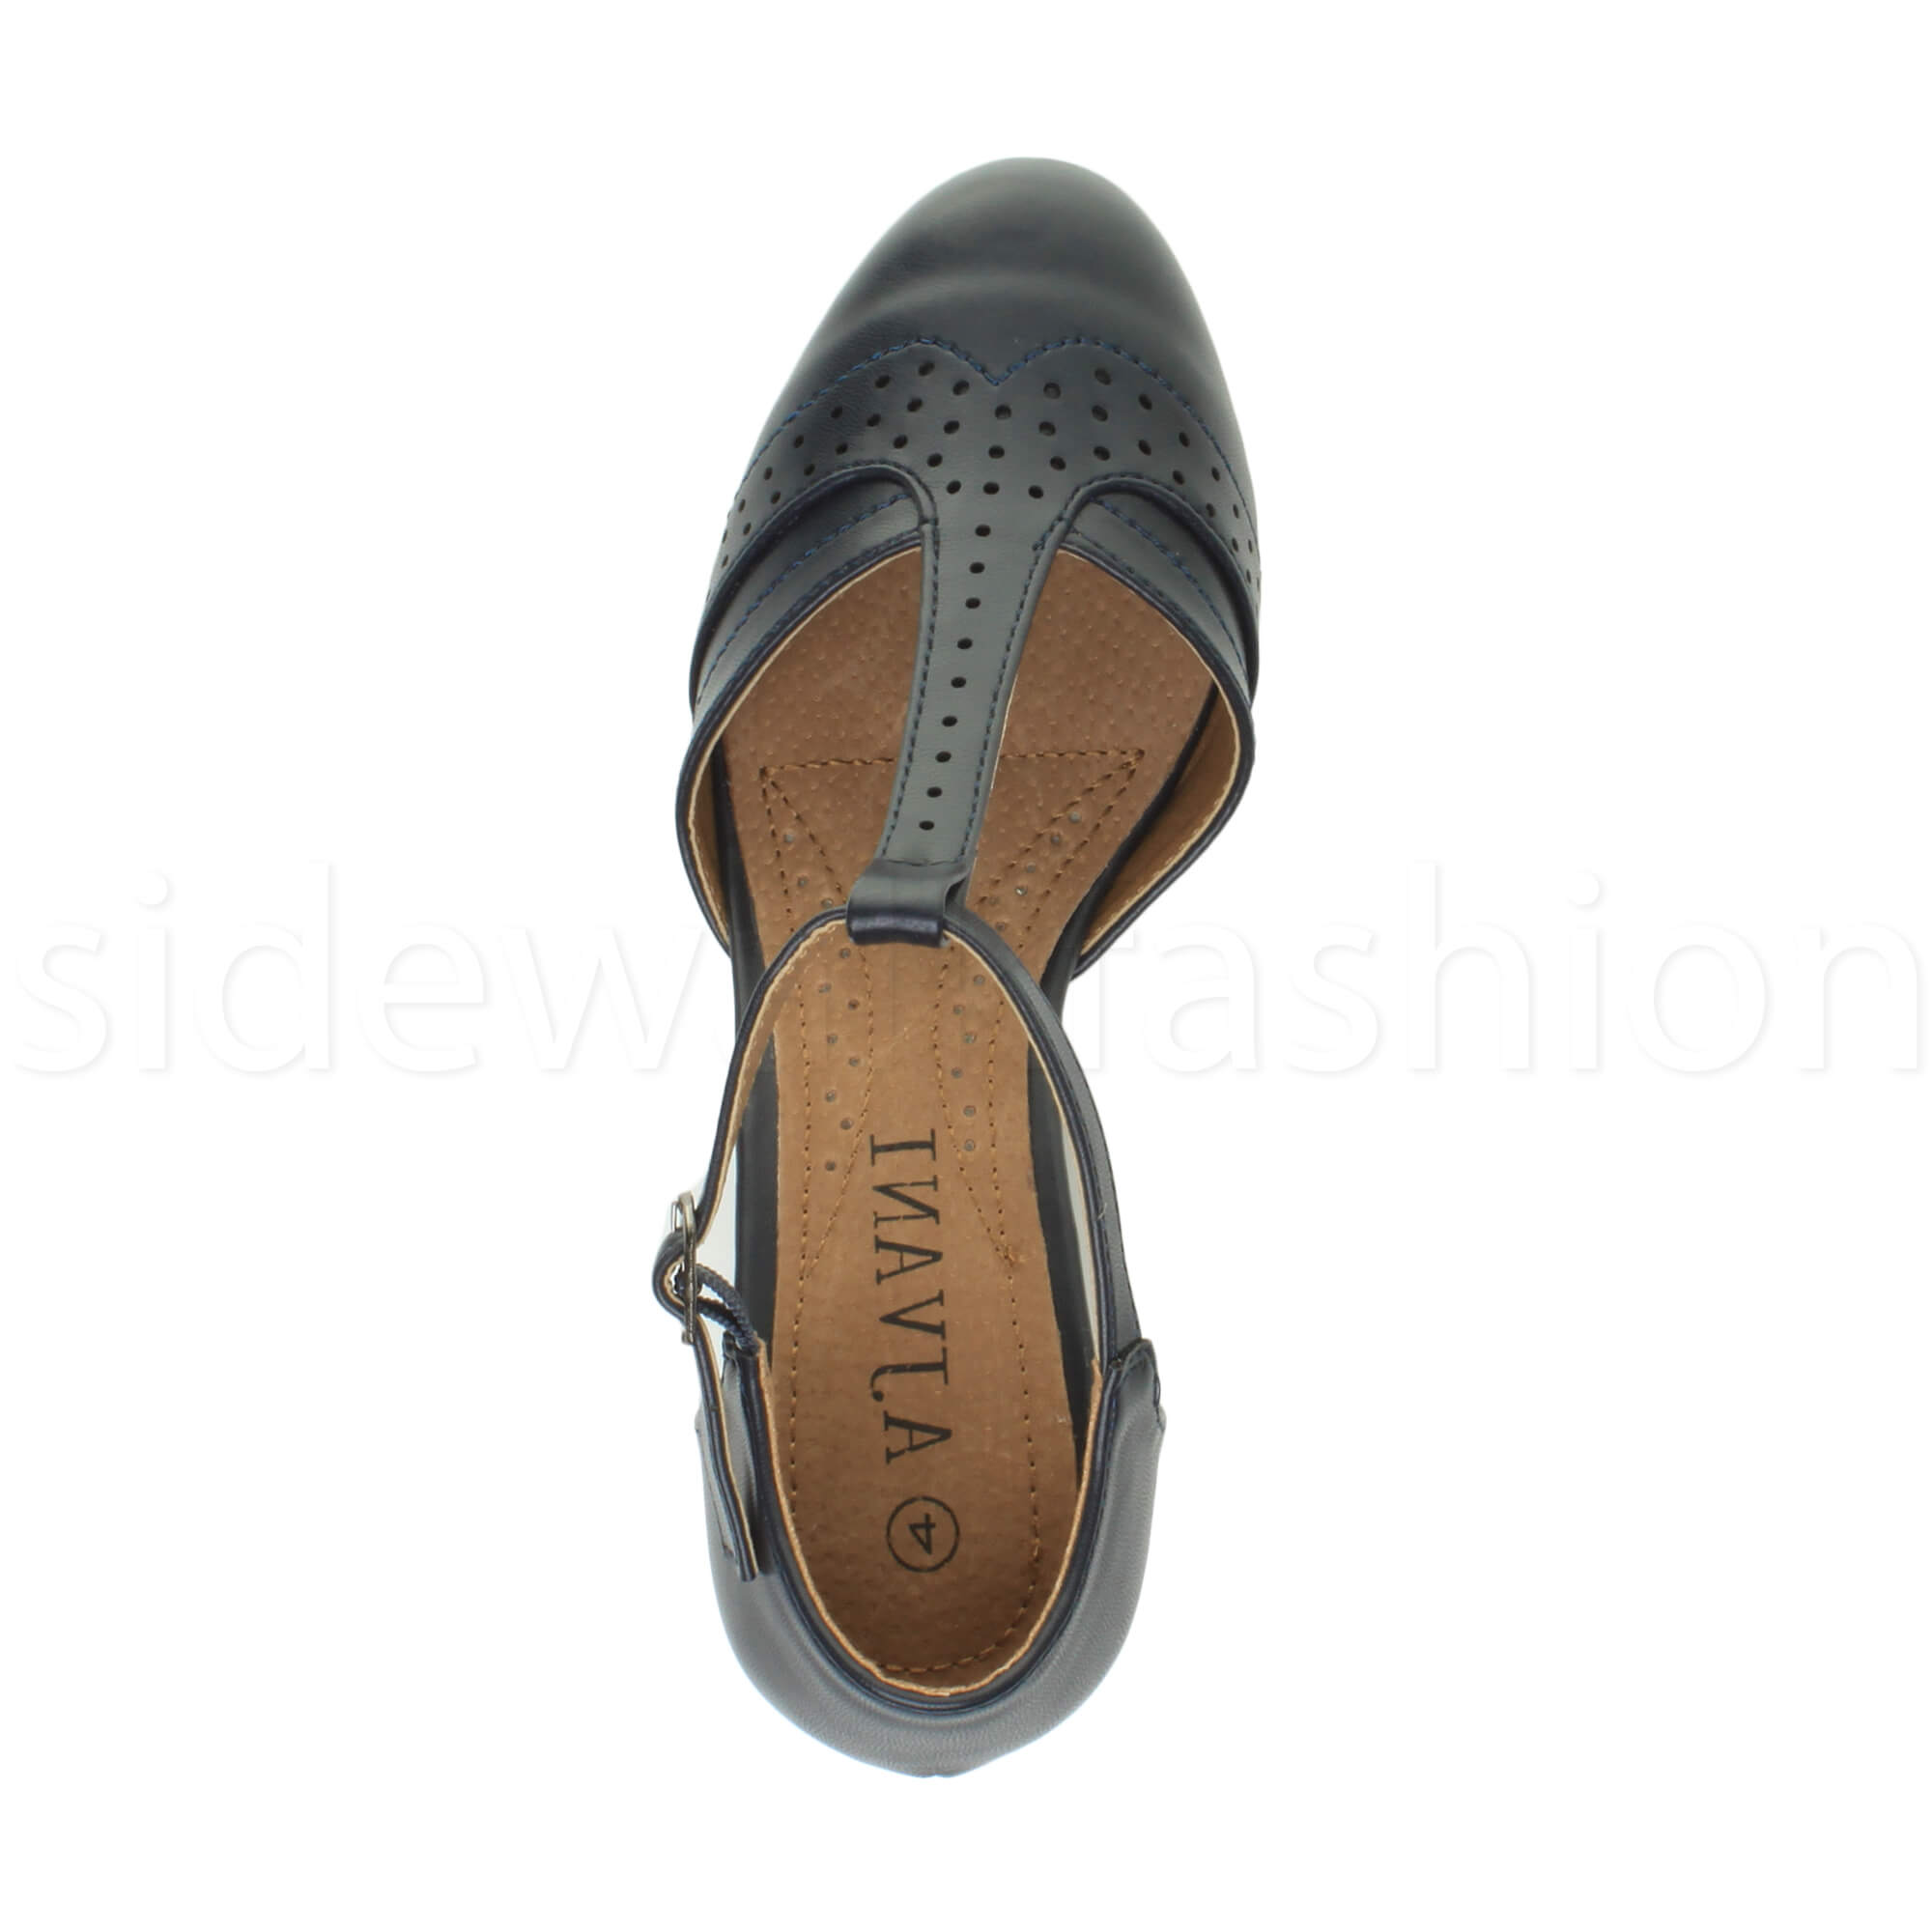 Womens-ladies-block-low-mid-heel-smart-work-Mary-Jane-T-bar-brogue-court-shoes thumbnail 41